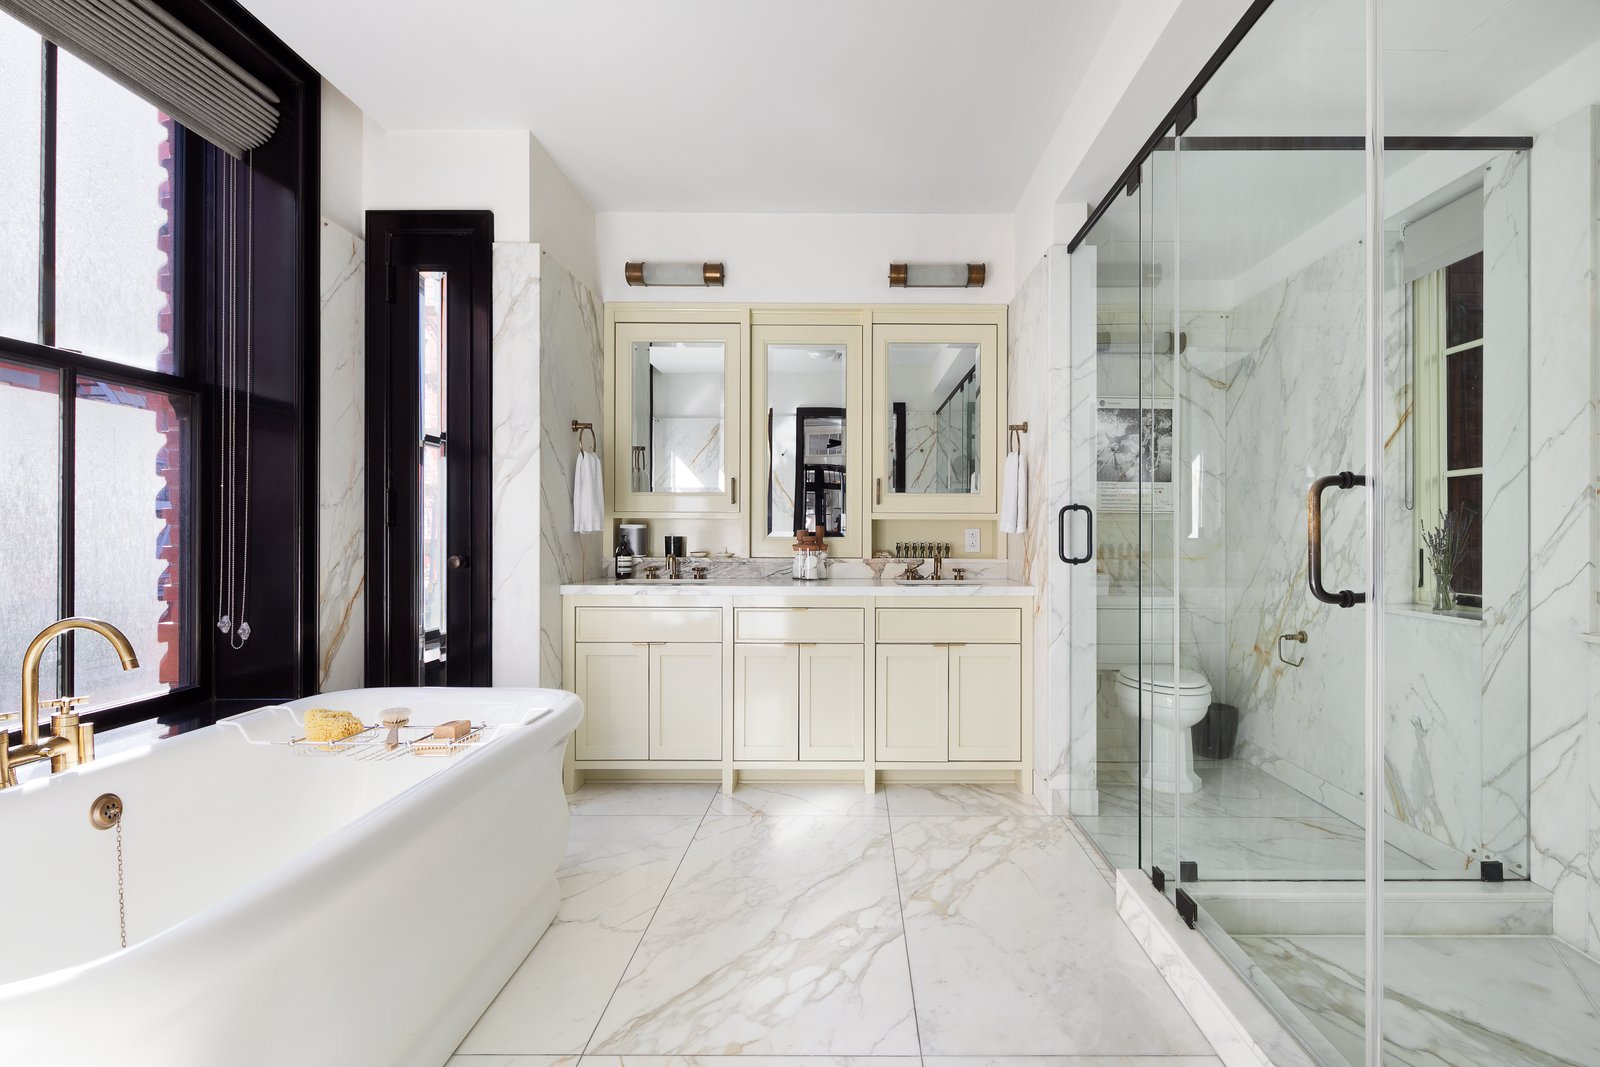 "Bath, Freestanding, Full, Marble, Enclosed, and Two Piece Roman & Williams designed the bathrooms with ""the look and feel of a grand European hotel"". The double vanity is painted a high-glass cream and slabs of Calacatta marble is mixed with brass fixtures makes the master bath shine.  Bath Two Piece Freestanding Full Photos from A Beautifully Bespoke Condo in Roman & Williams' Coveted Nolita Building Lists For $7M"